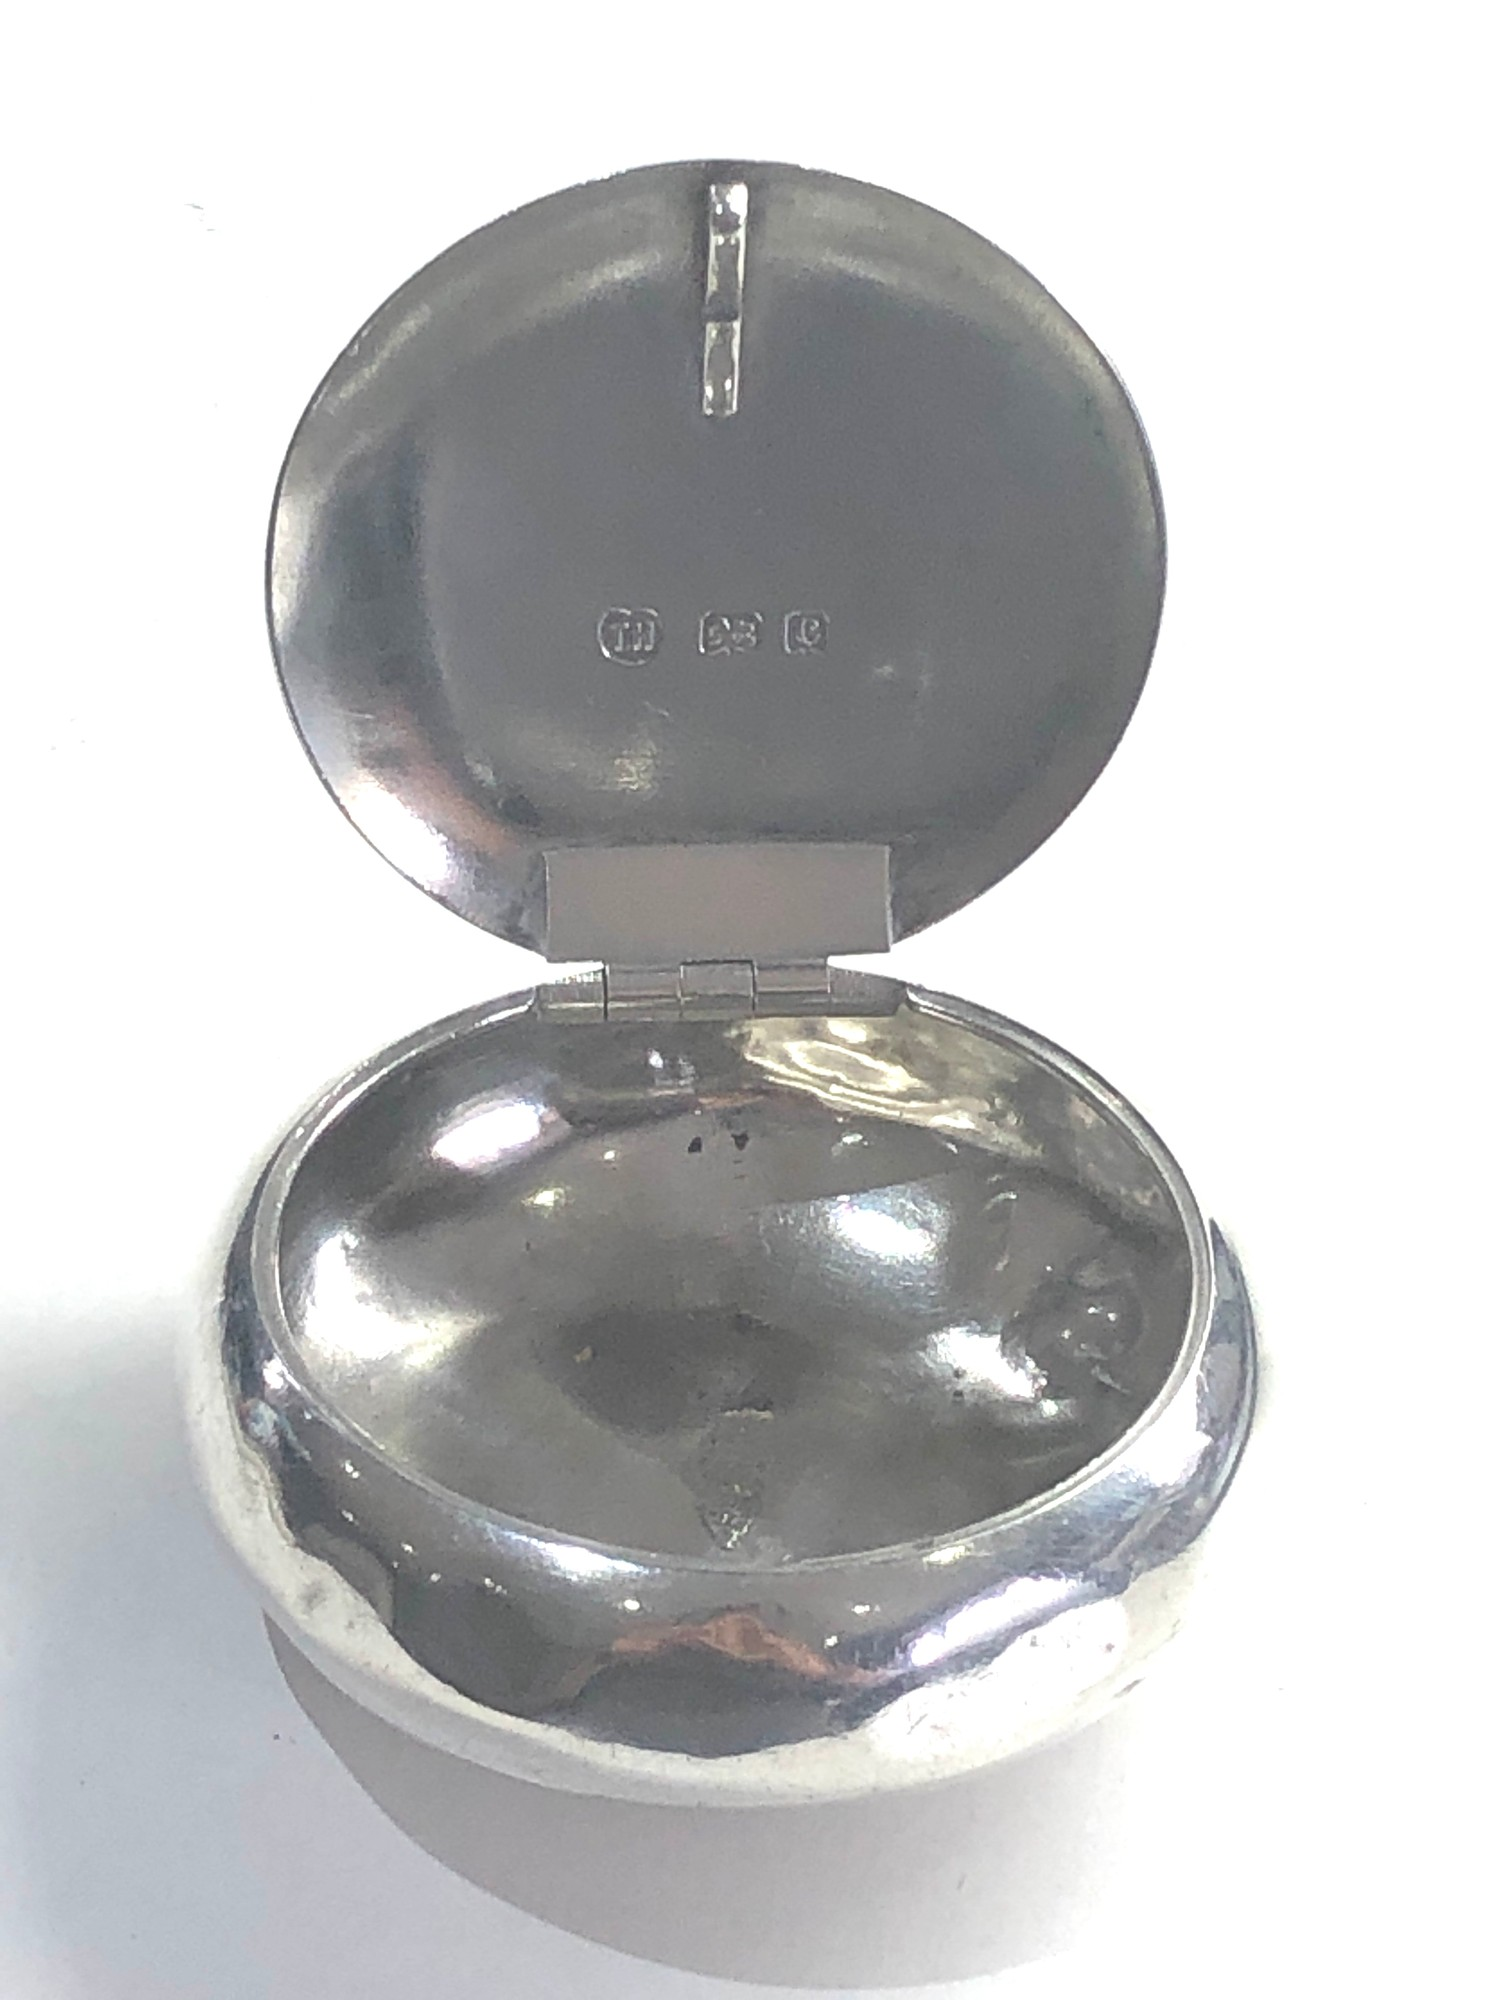 Antique silver tobacco box Birmingham silver hallmarks age related dents please see images for